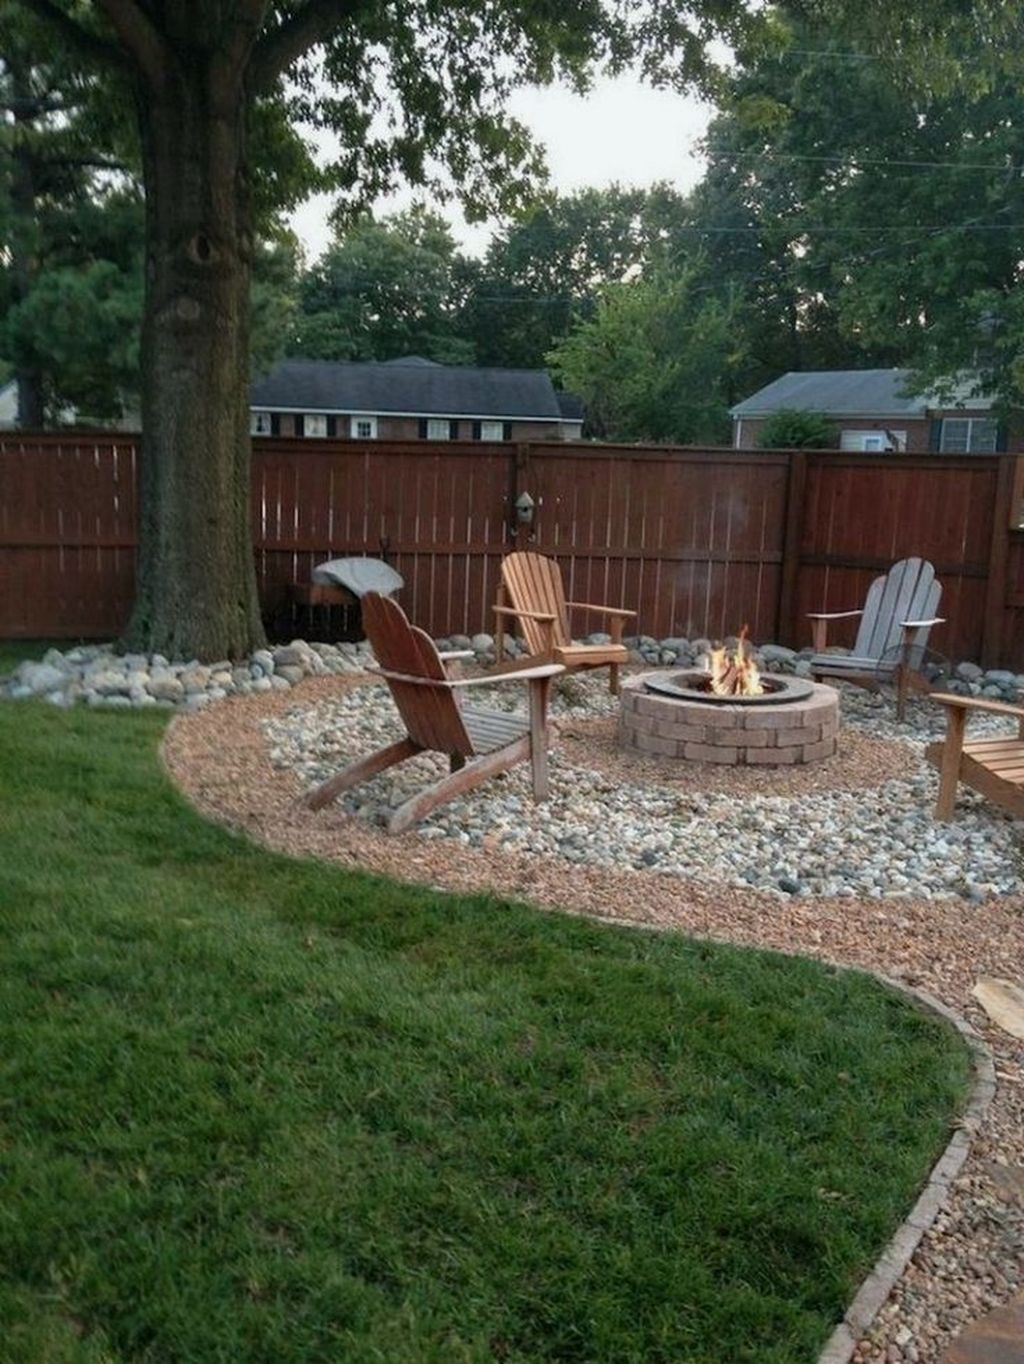 The Best Front Yard Landscaping Ideas Sitting Area 20